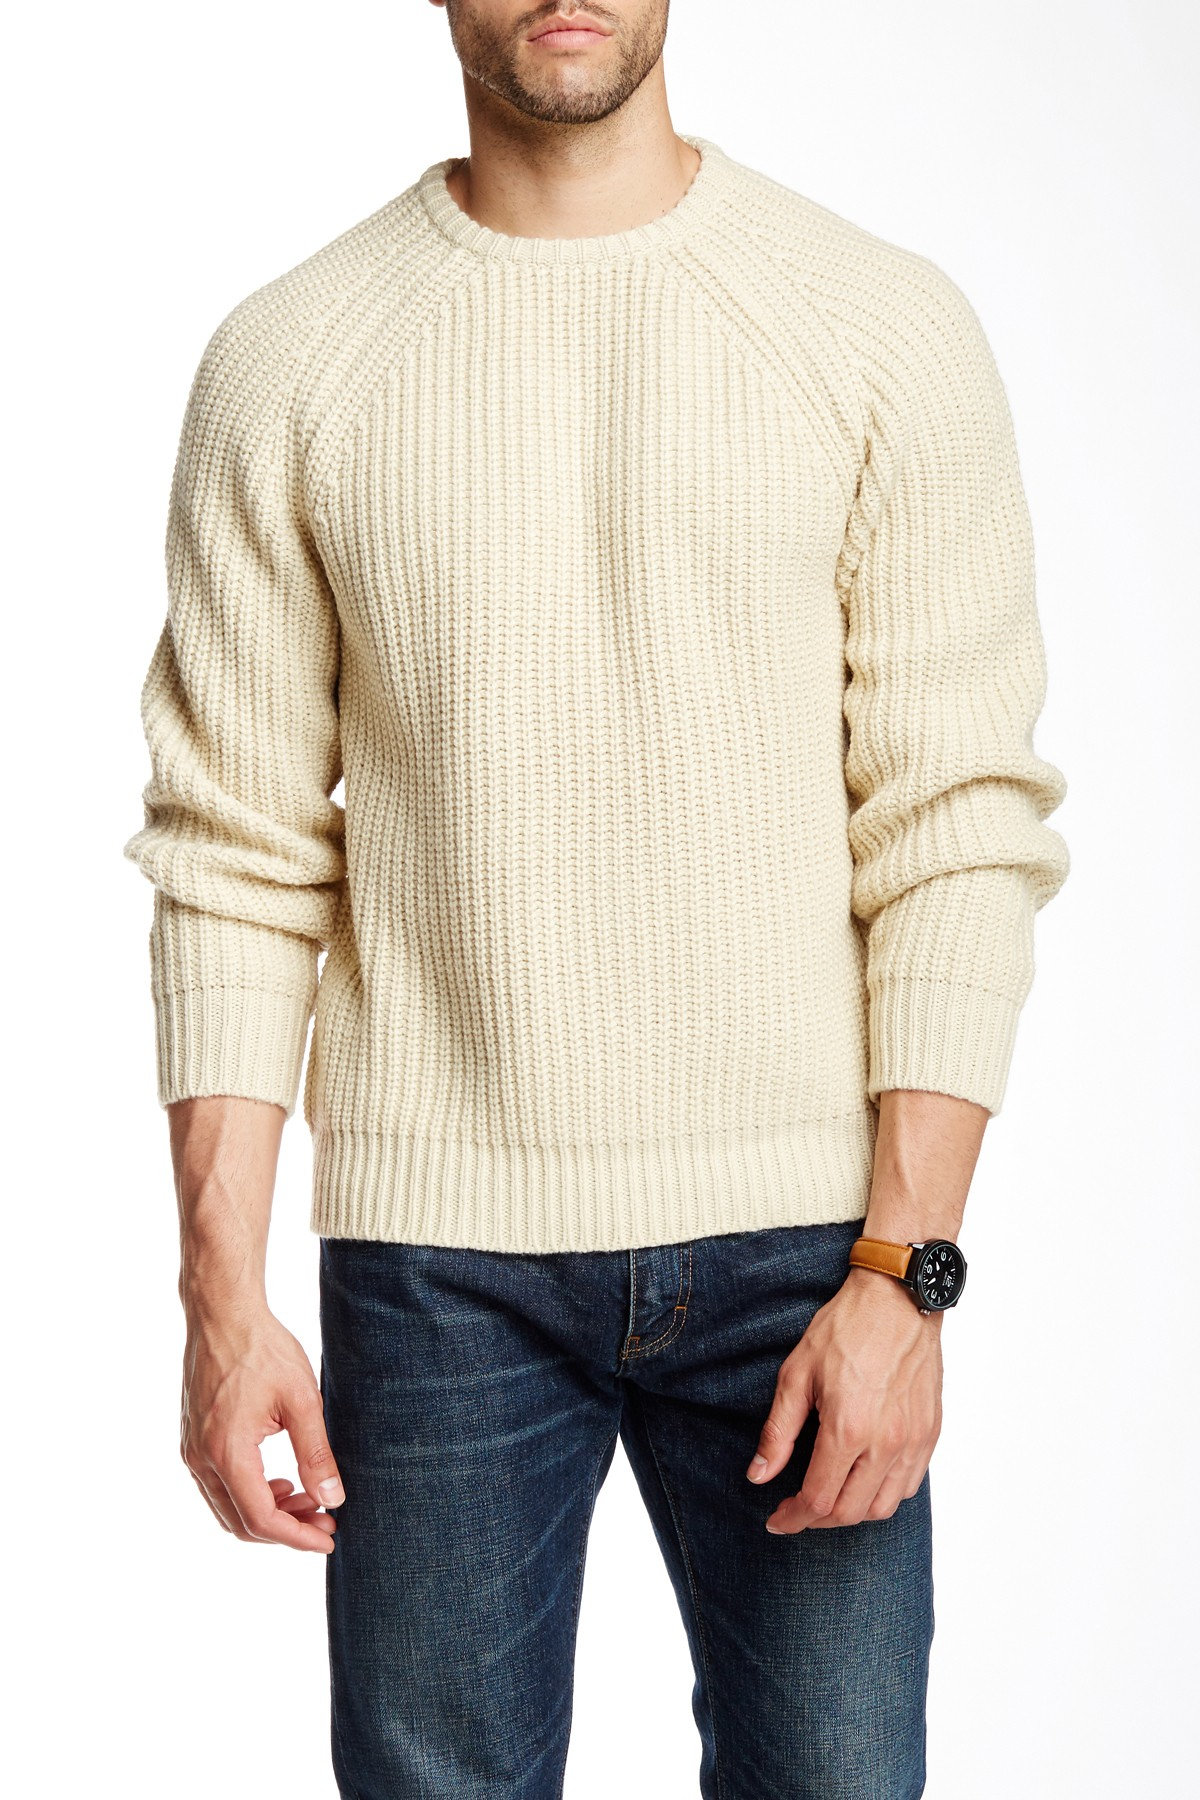 Lyst - Obey Mitte Knit Sweater in Natural for Men